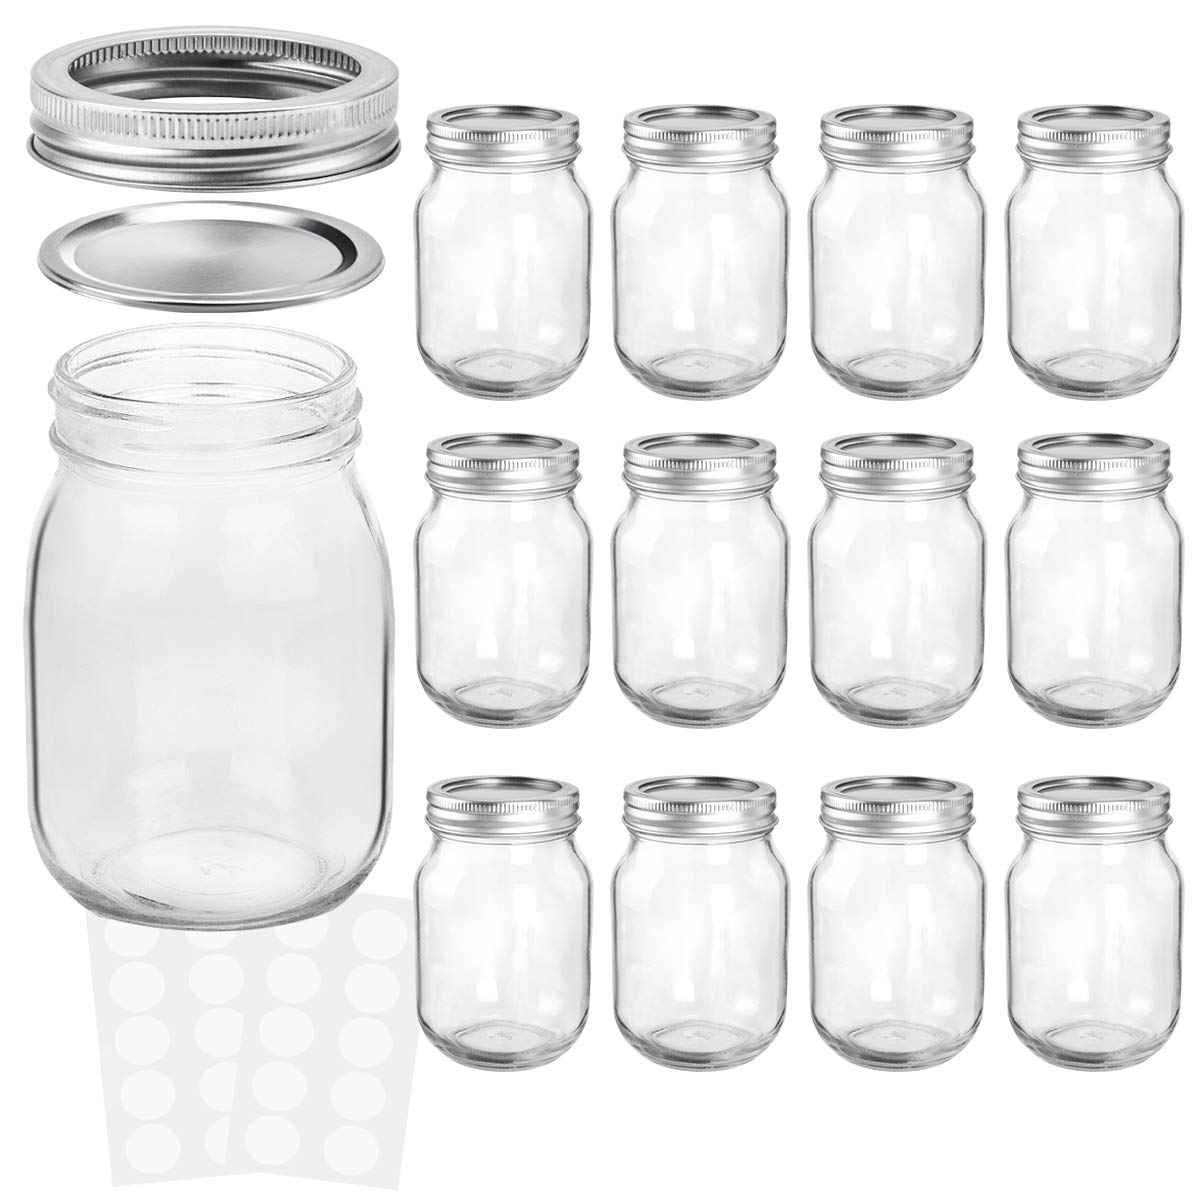 KAMOTA Mason Jars 12OZ With Regular Lids and Bands, Ideal for Jam, Honey, Wedding Favors, Shower Favors, Baby Foods, DIY Magnetic Spice Jars, 12 PACK, 20 Whiteboard Labels Included